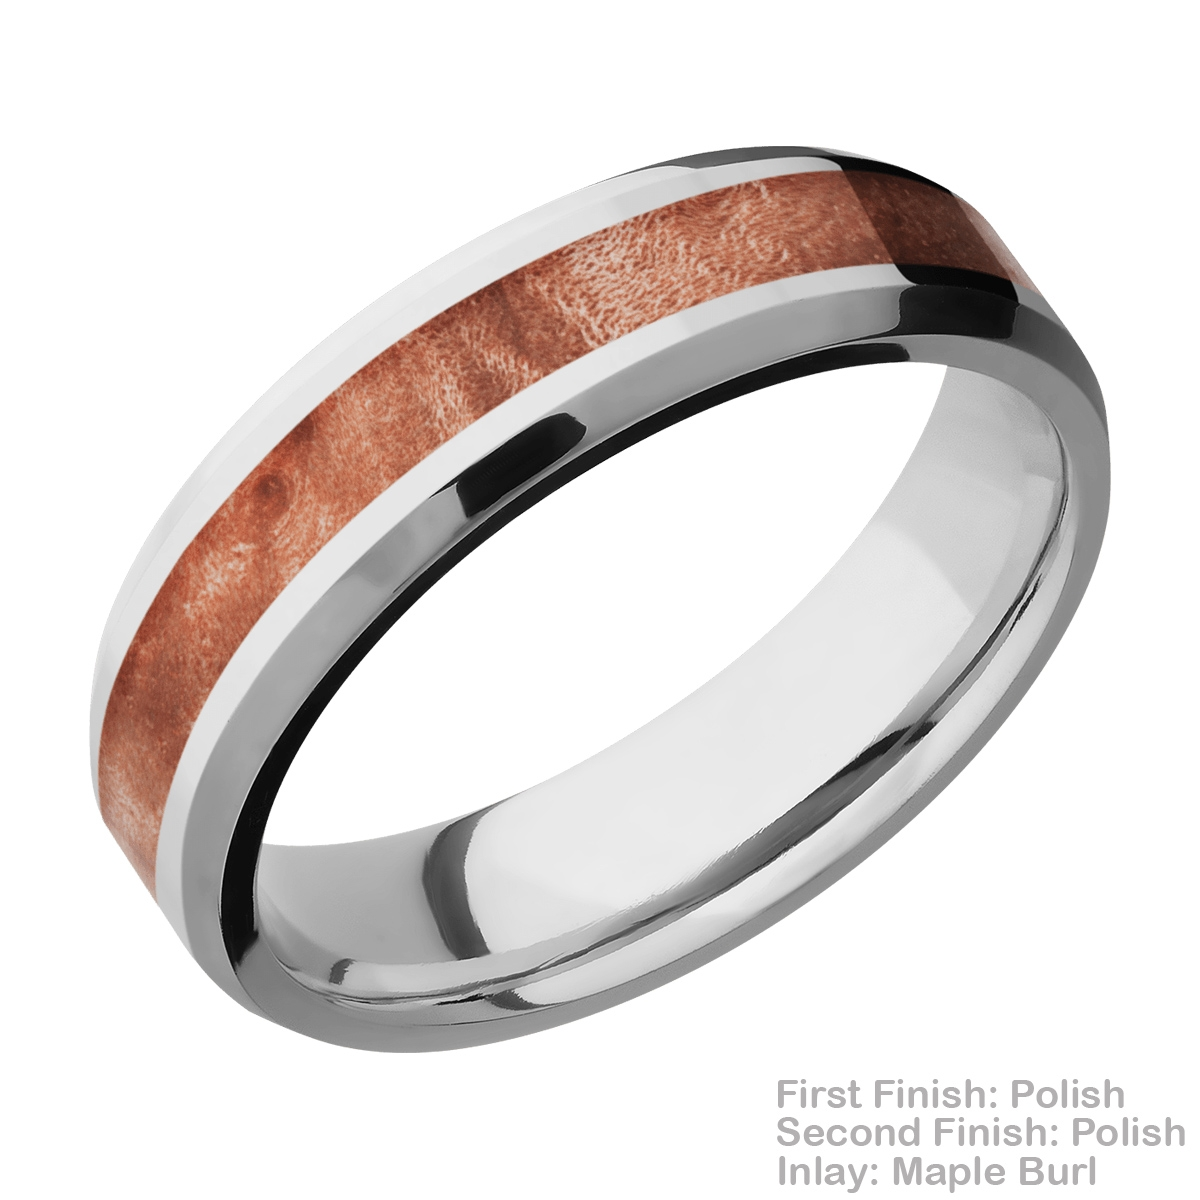 Lashbrook CC6B13(NS)/HARDWOOD Cobalt Chrome Wedding Ring or Band Alternative View 9